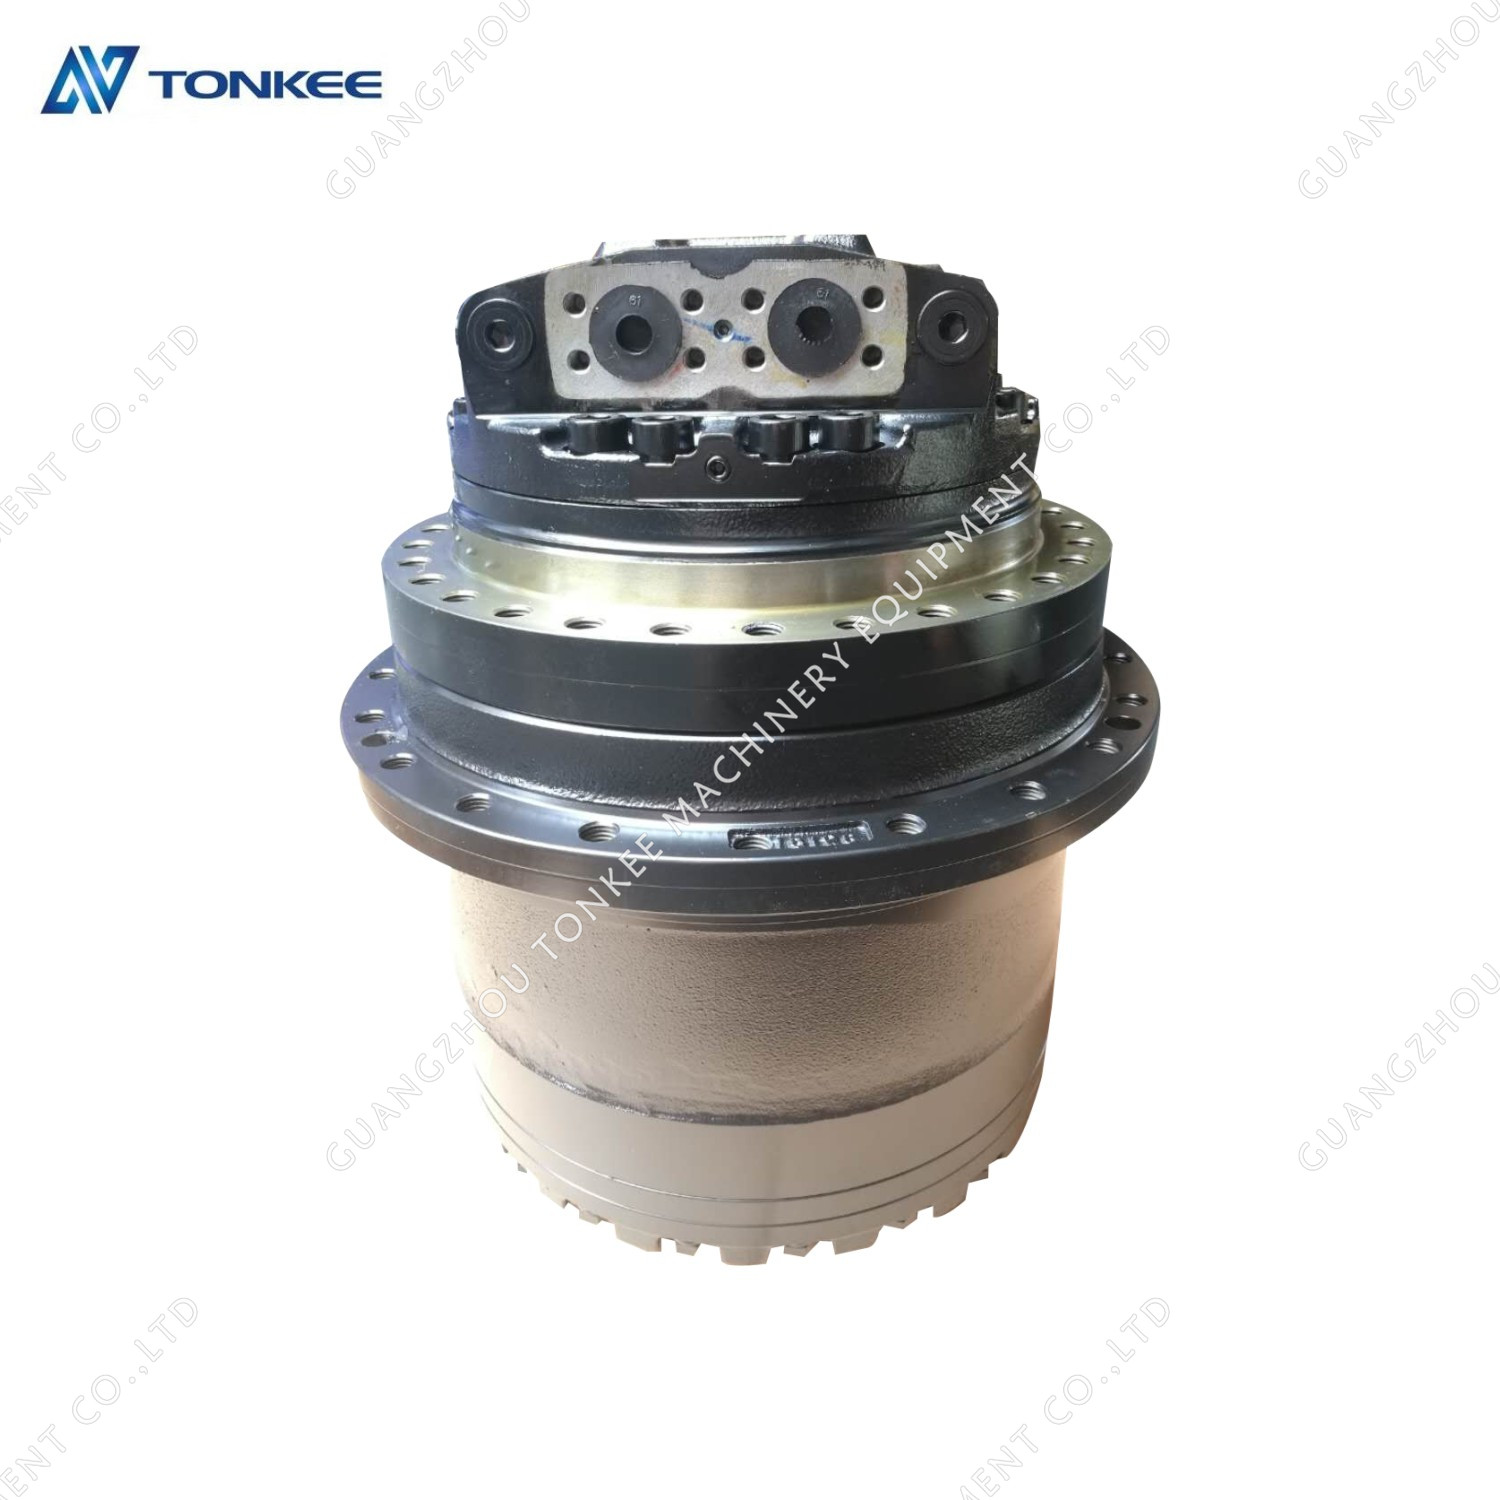 67684001 final drive group R160LC R160 travel motor assy for HYUNDAI excavator, genuine new DOOSAN